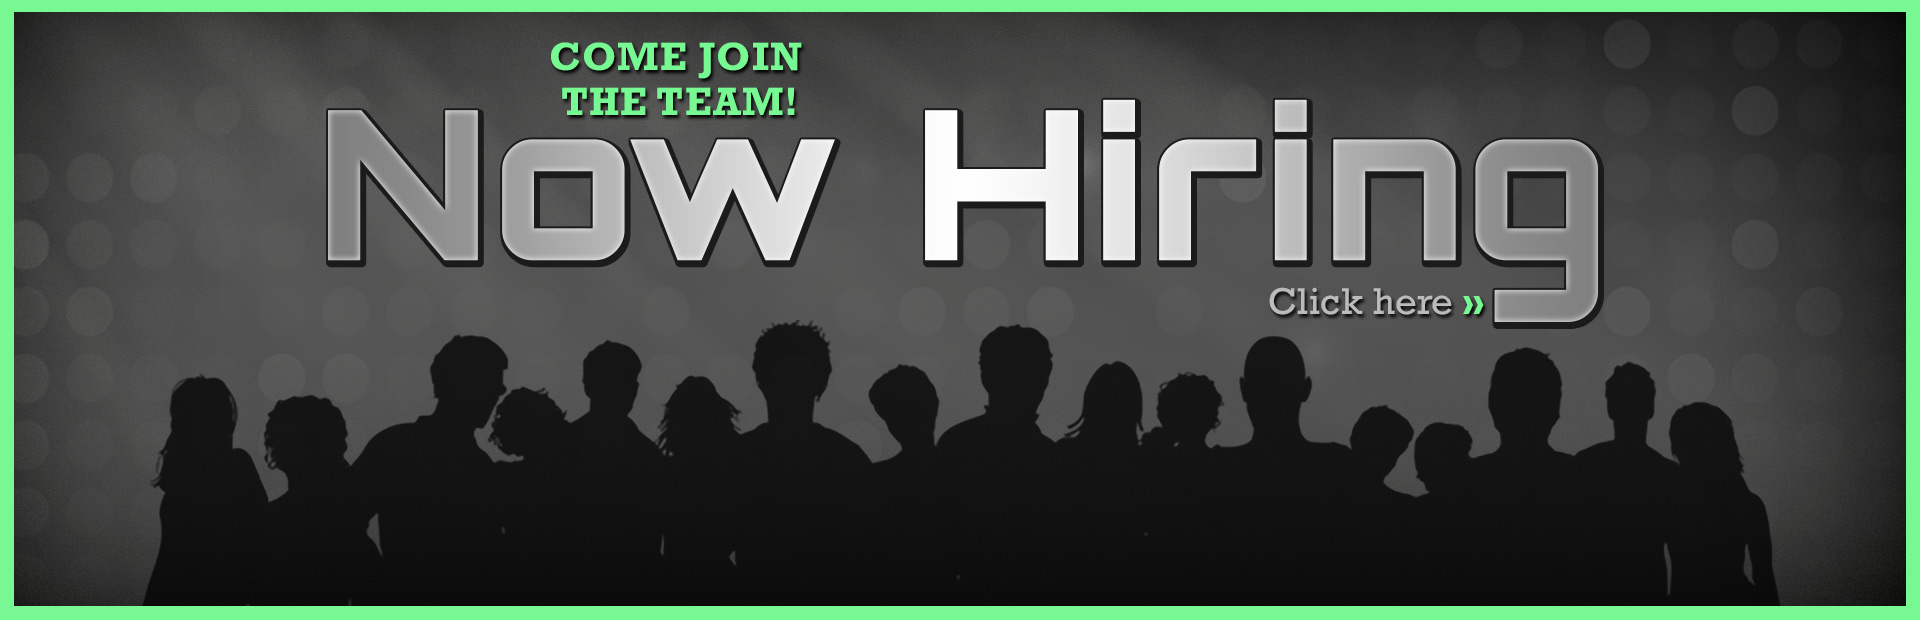 We are hiring. Come join the team! Click here to contact us for details.